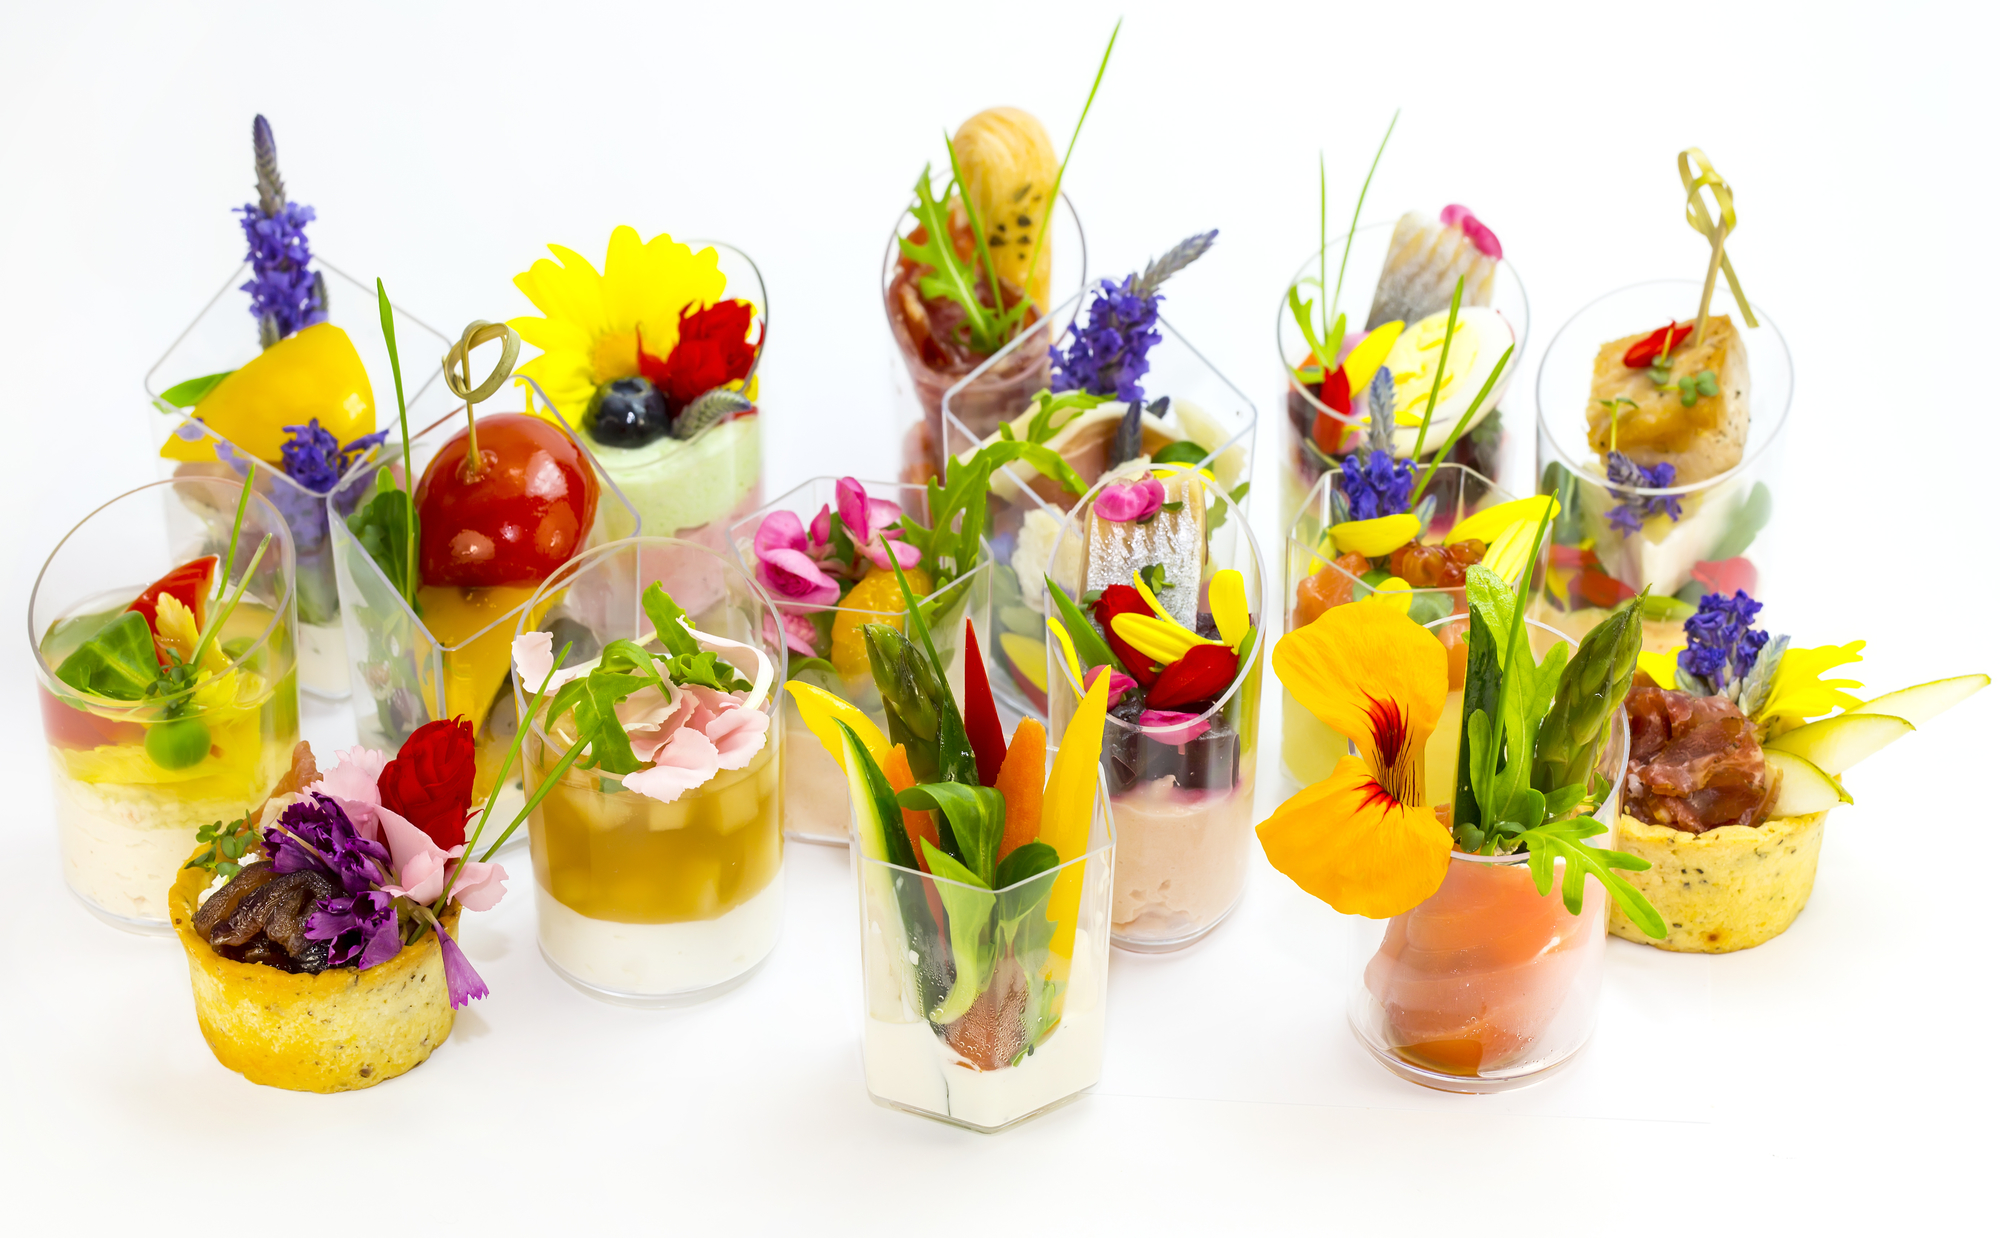 edible flowers in cocktail drinks